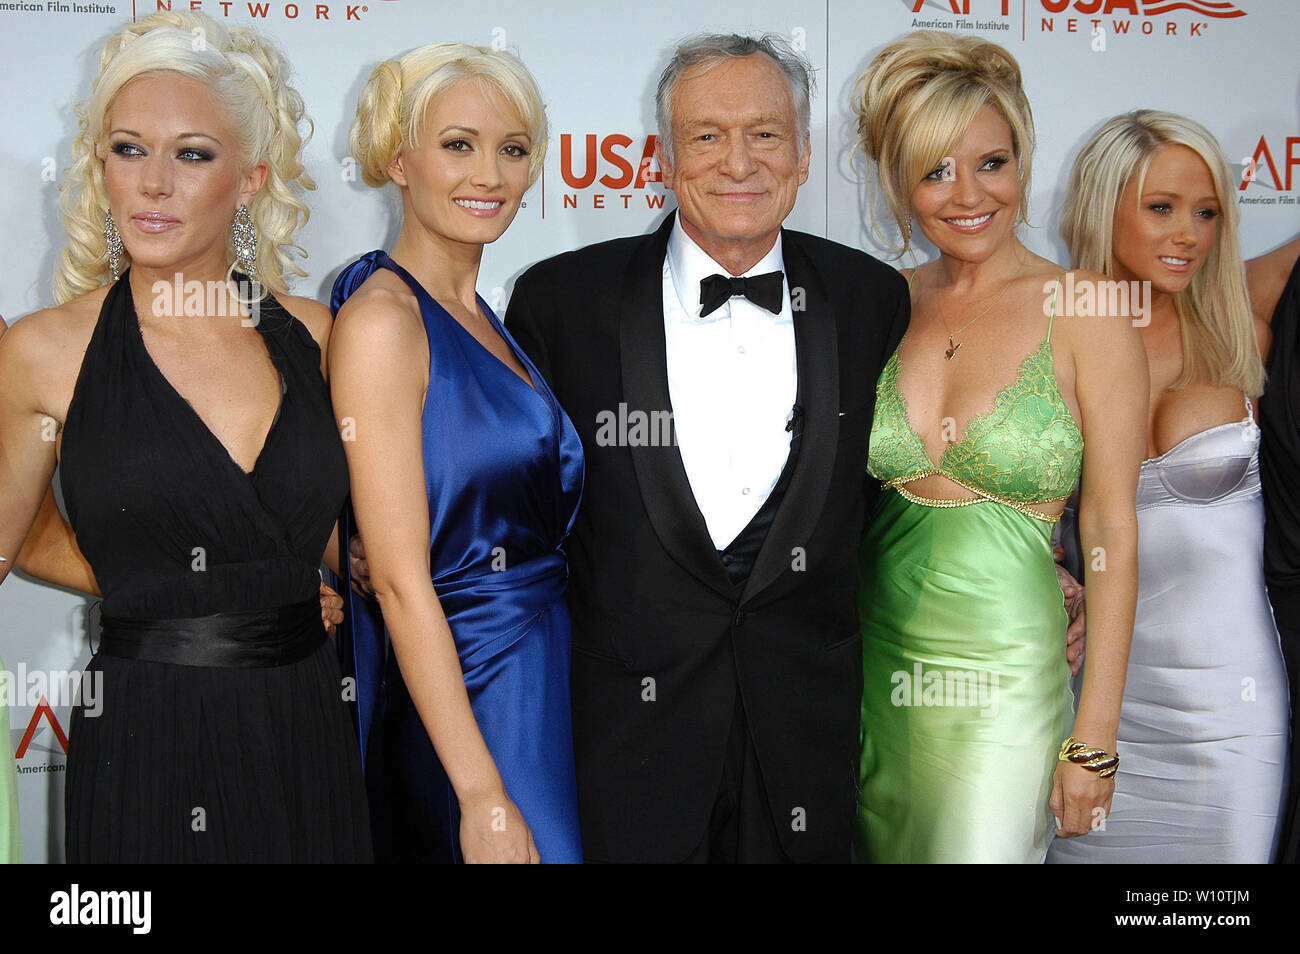 Hugh Hefner And Playmates High Resolution Stock Photography And Images Alamy